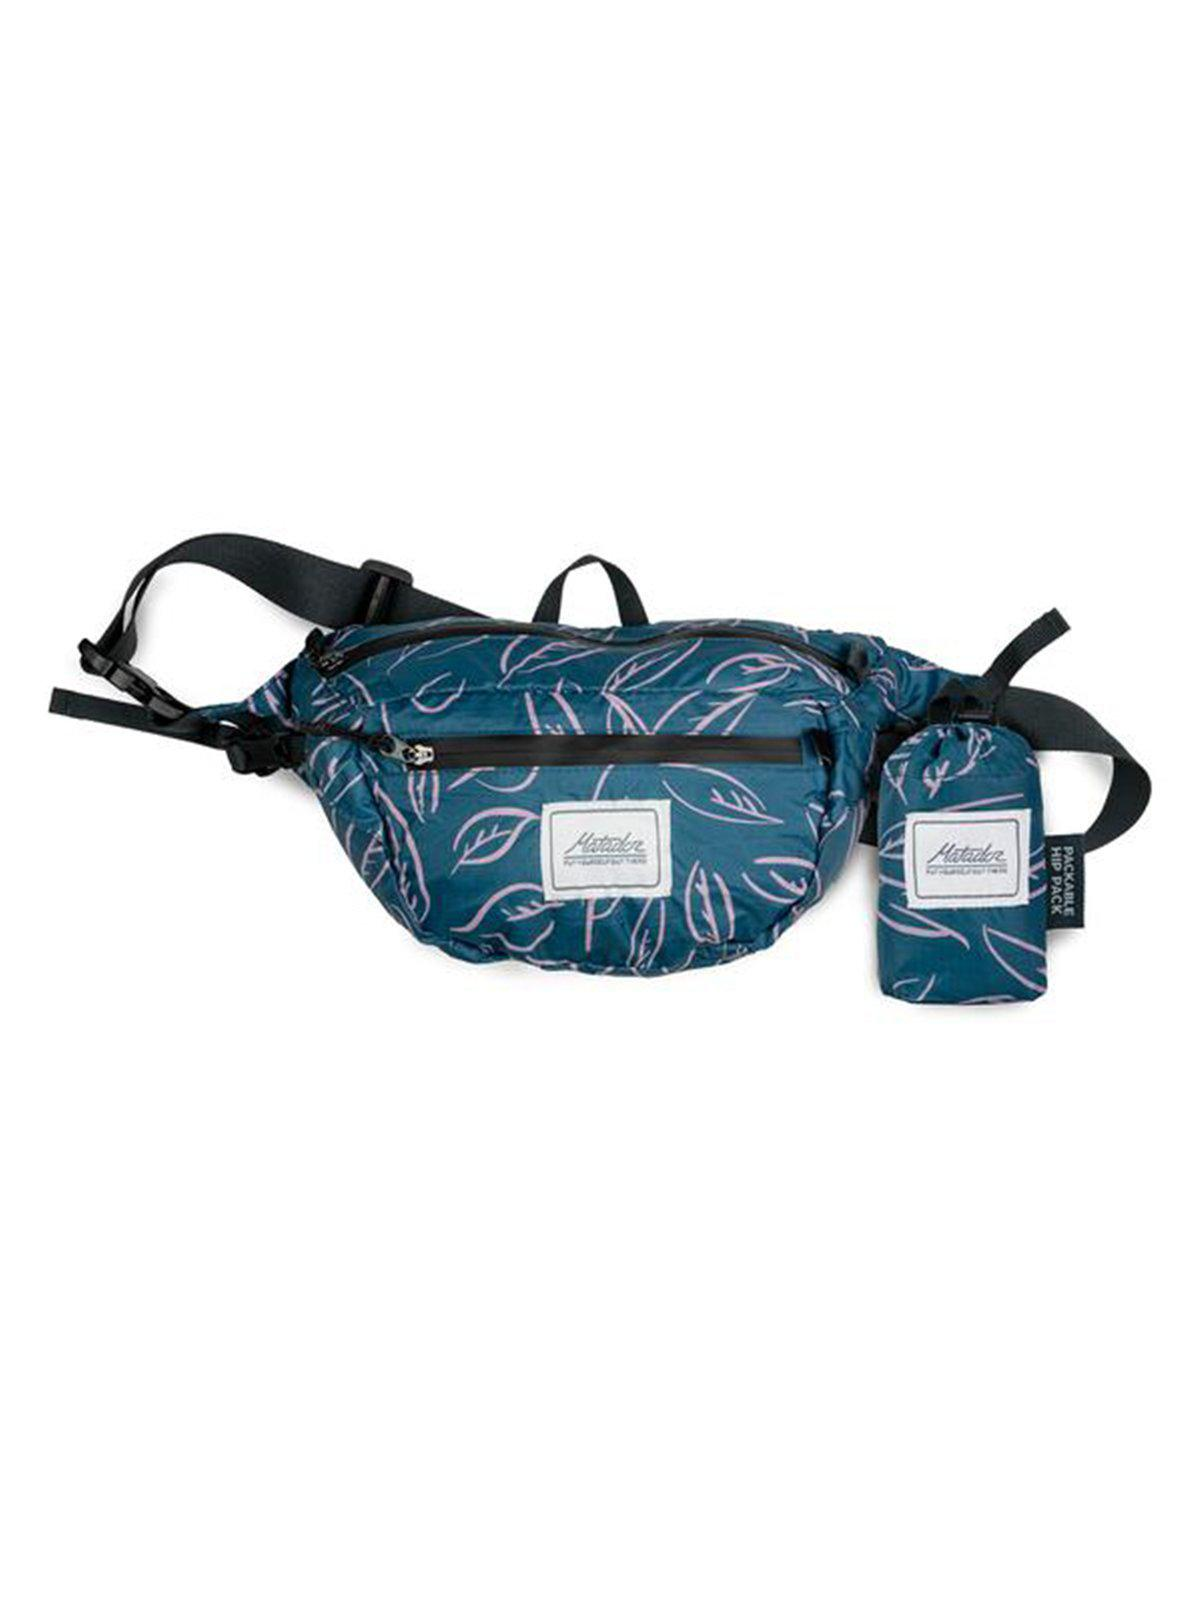 Matador Daylite Packable Hip Pack Leaf Pattern - MORE by Morello Indonesia